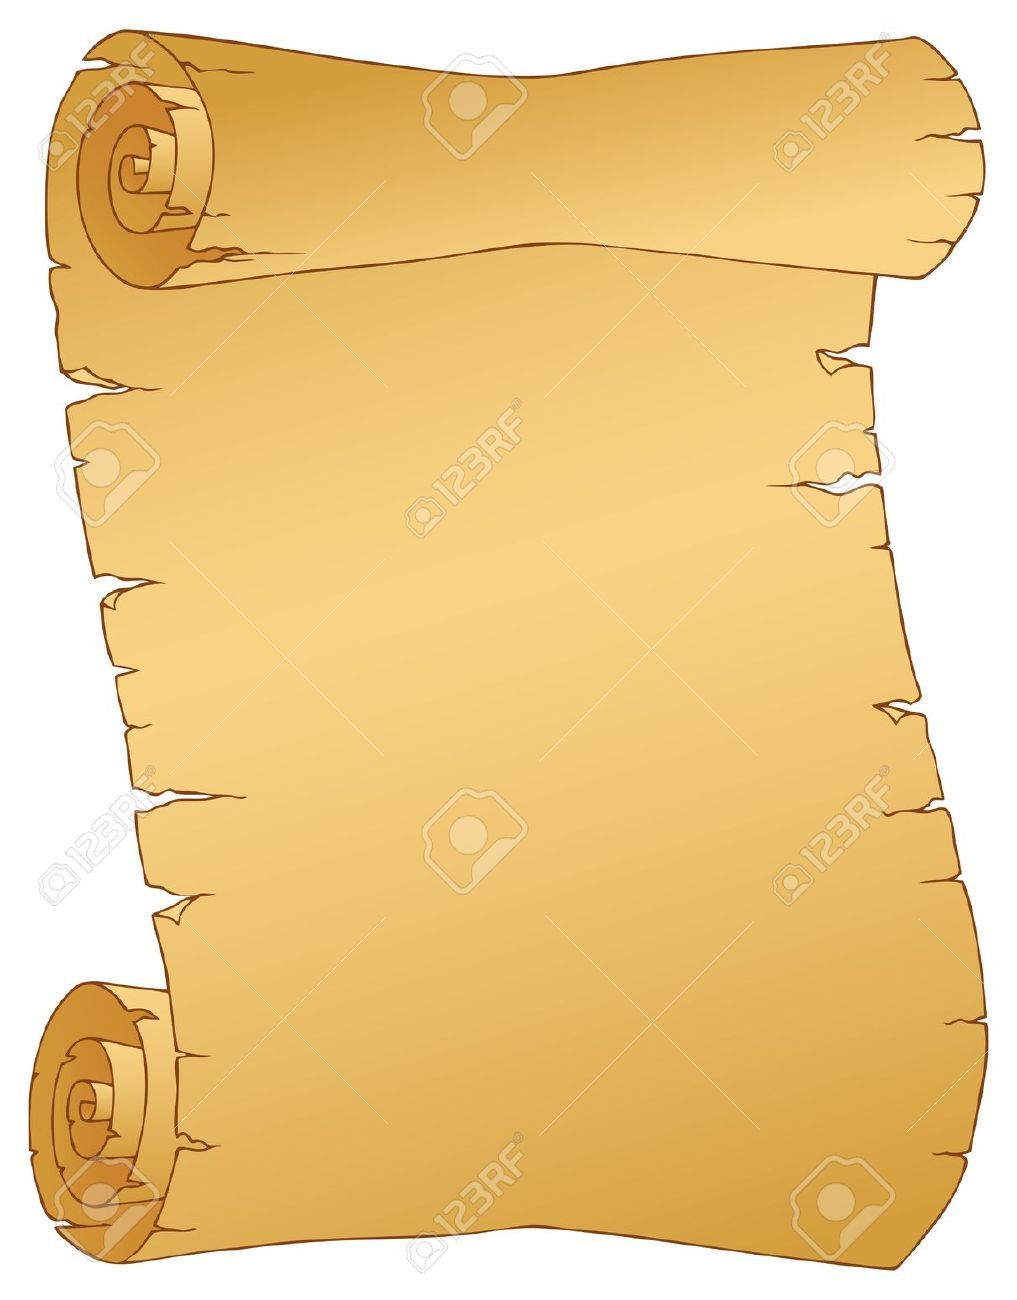 Parchment scroll clipart clip art free stock Parchment scroll clipart 2 » Clipart Portal clip art free stock